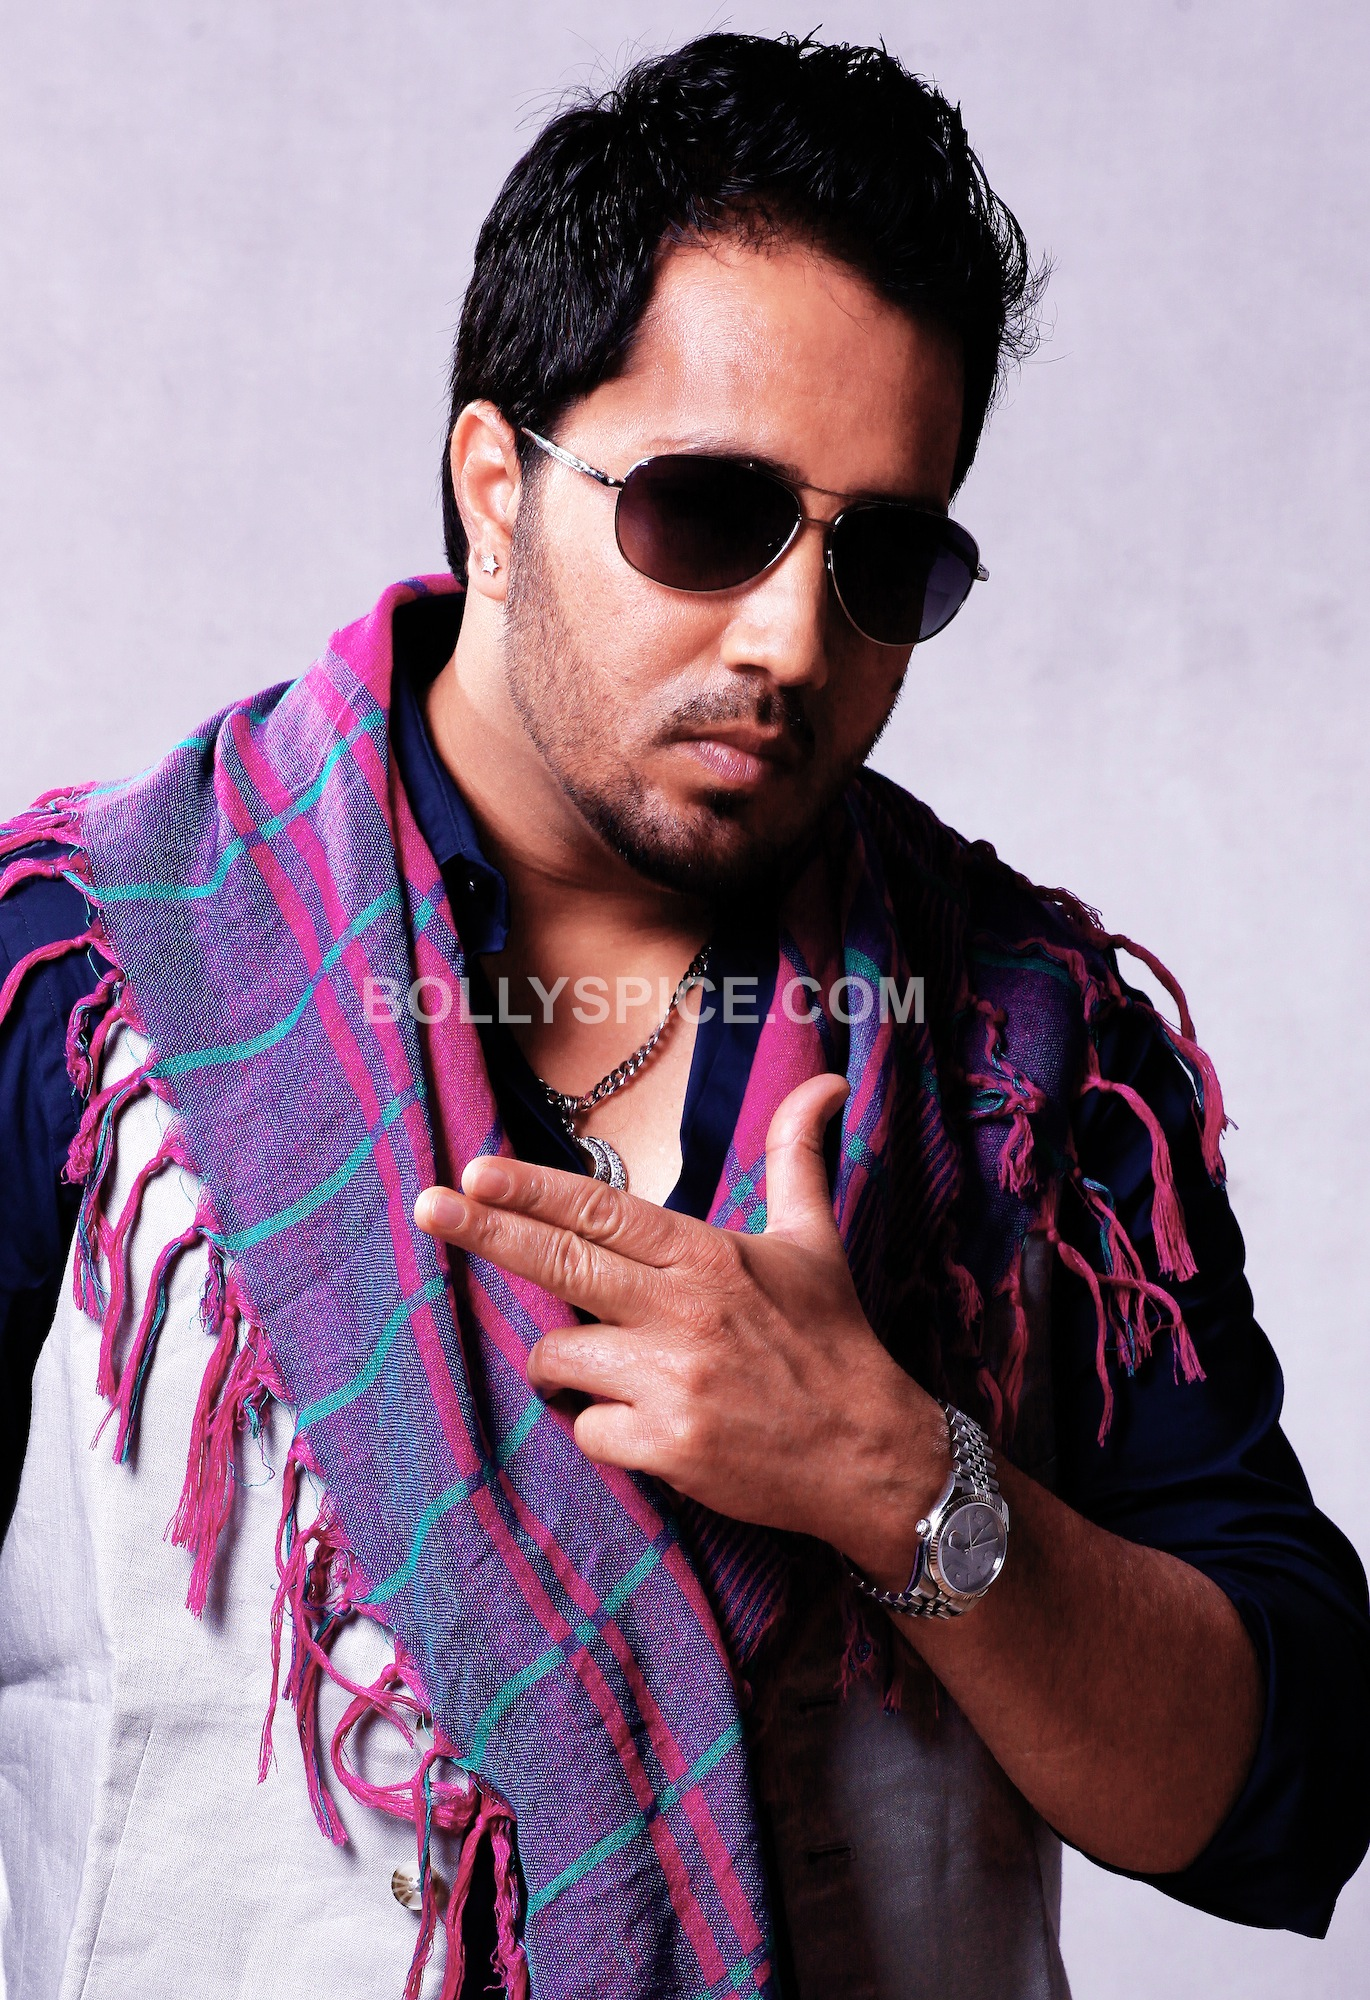 mikasingh Get ready for some Dhamaka because Mika Singh is Coming to the UK in June